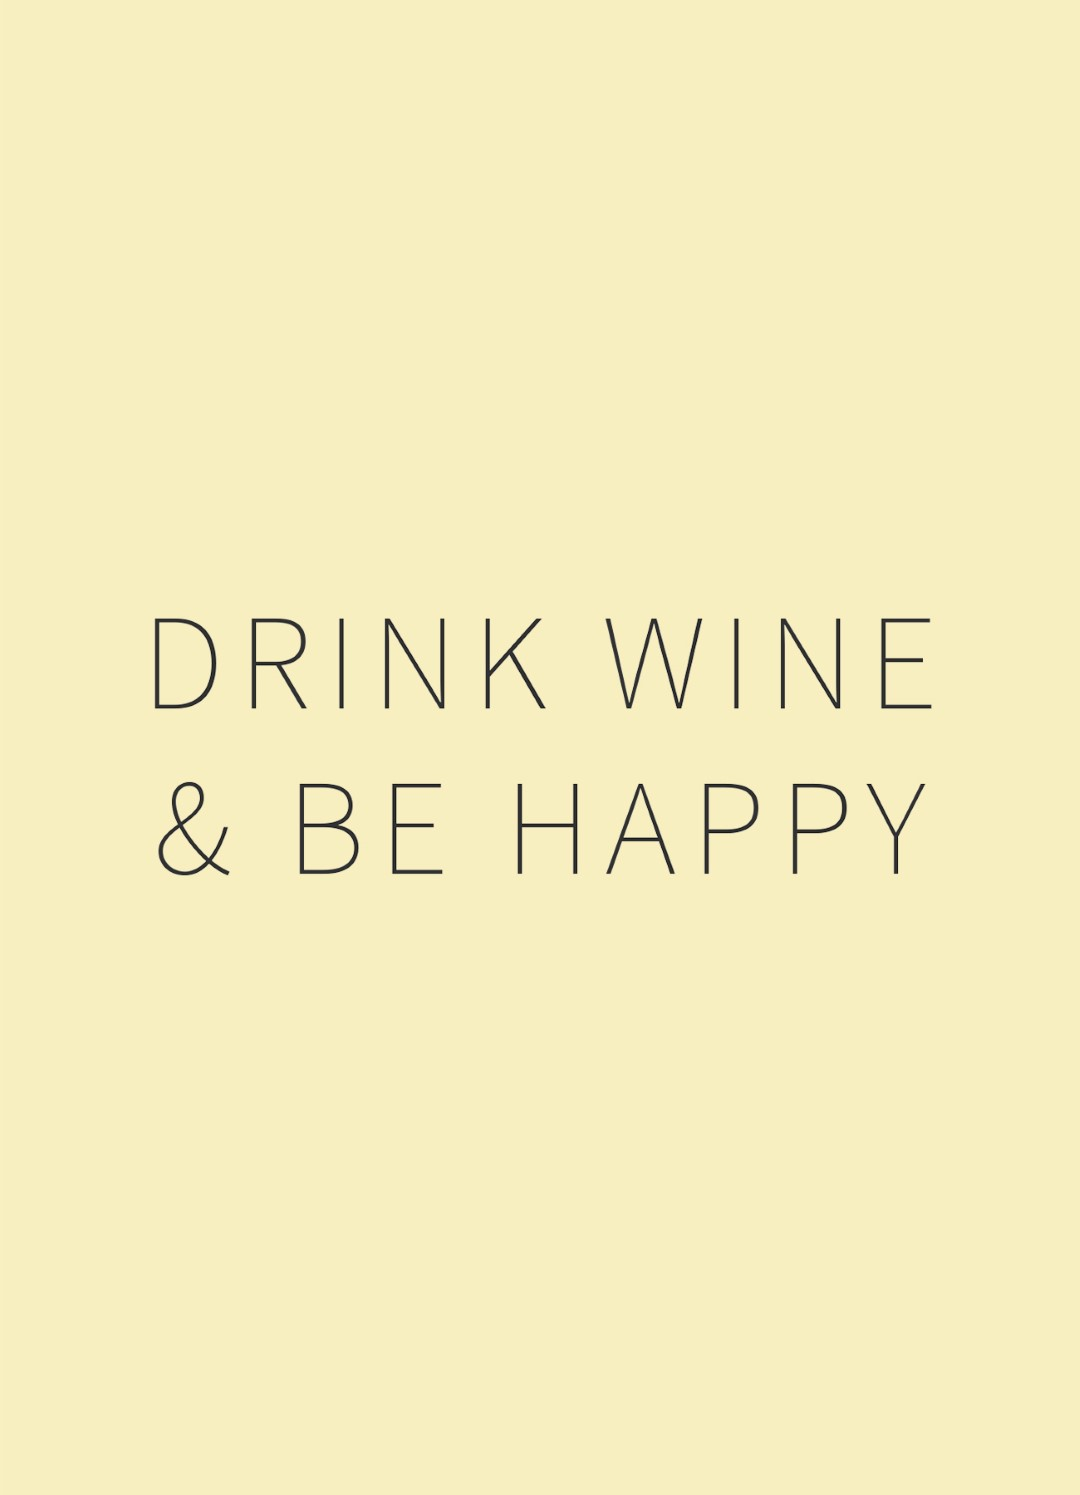 Happy Wine Card drink wine & be happy